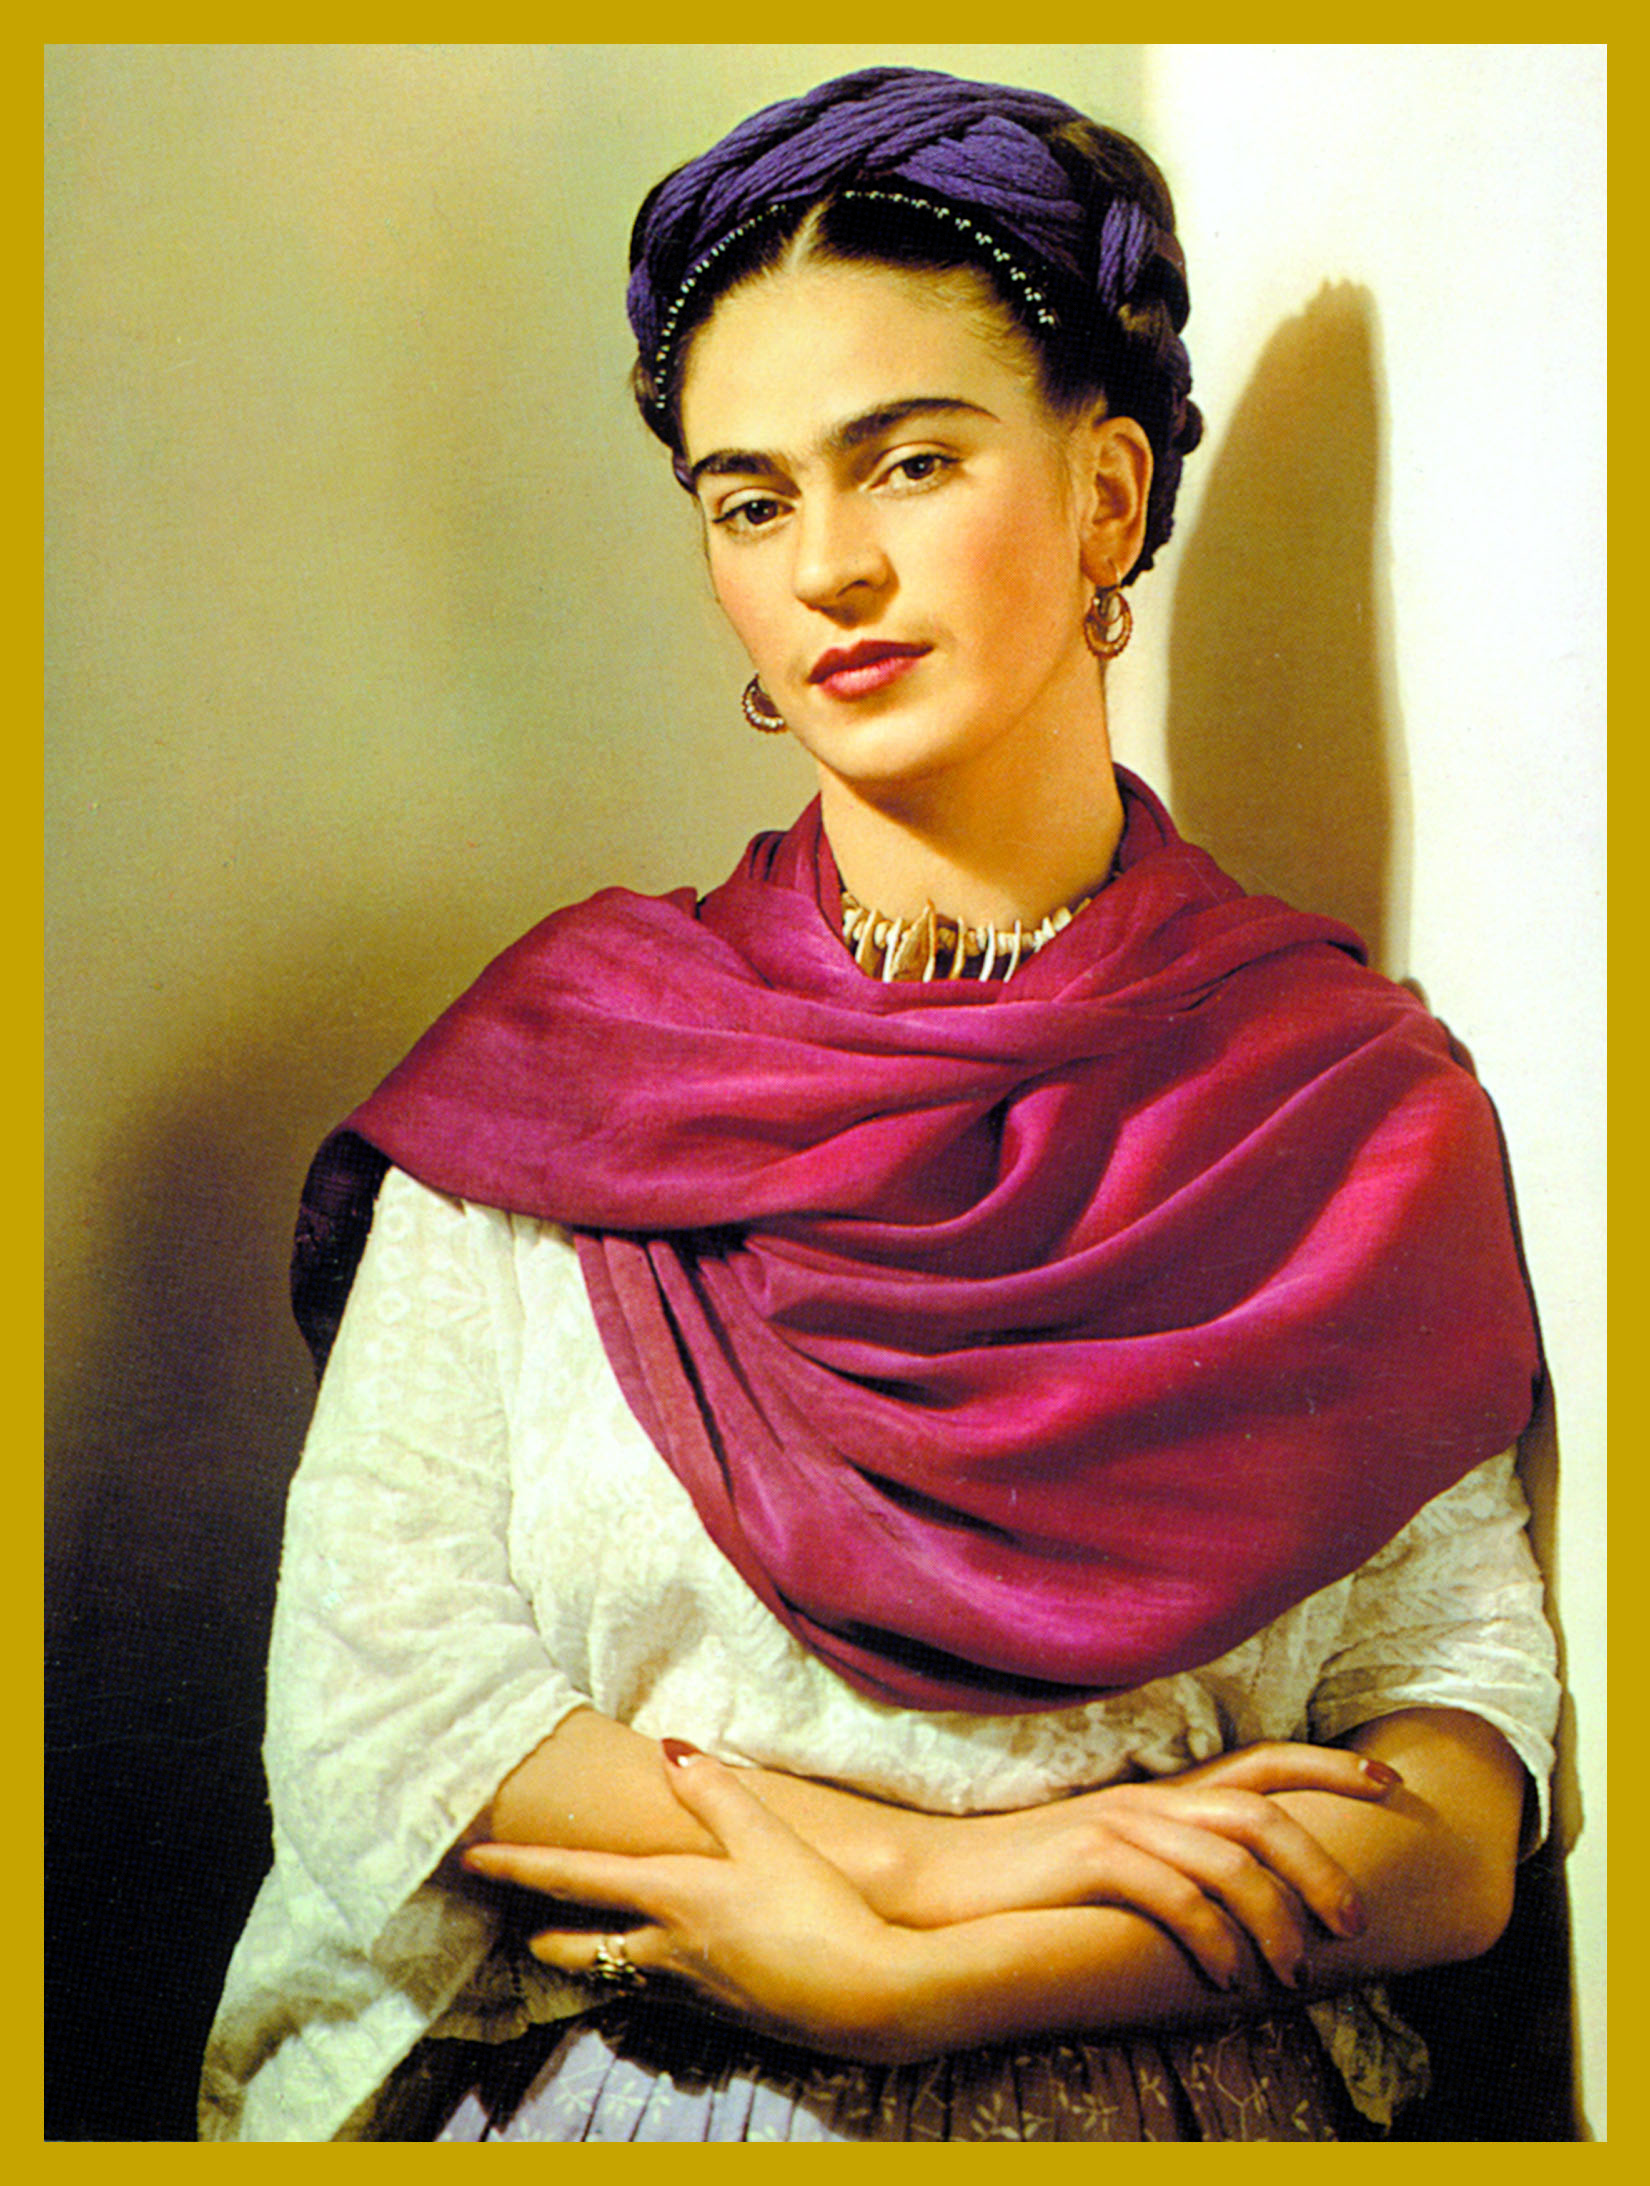 FR-RS - Frida KahloBeloved and influential Mexican painter of the middle twentieth century.